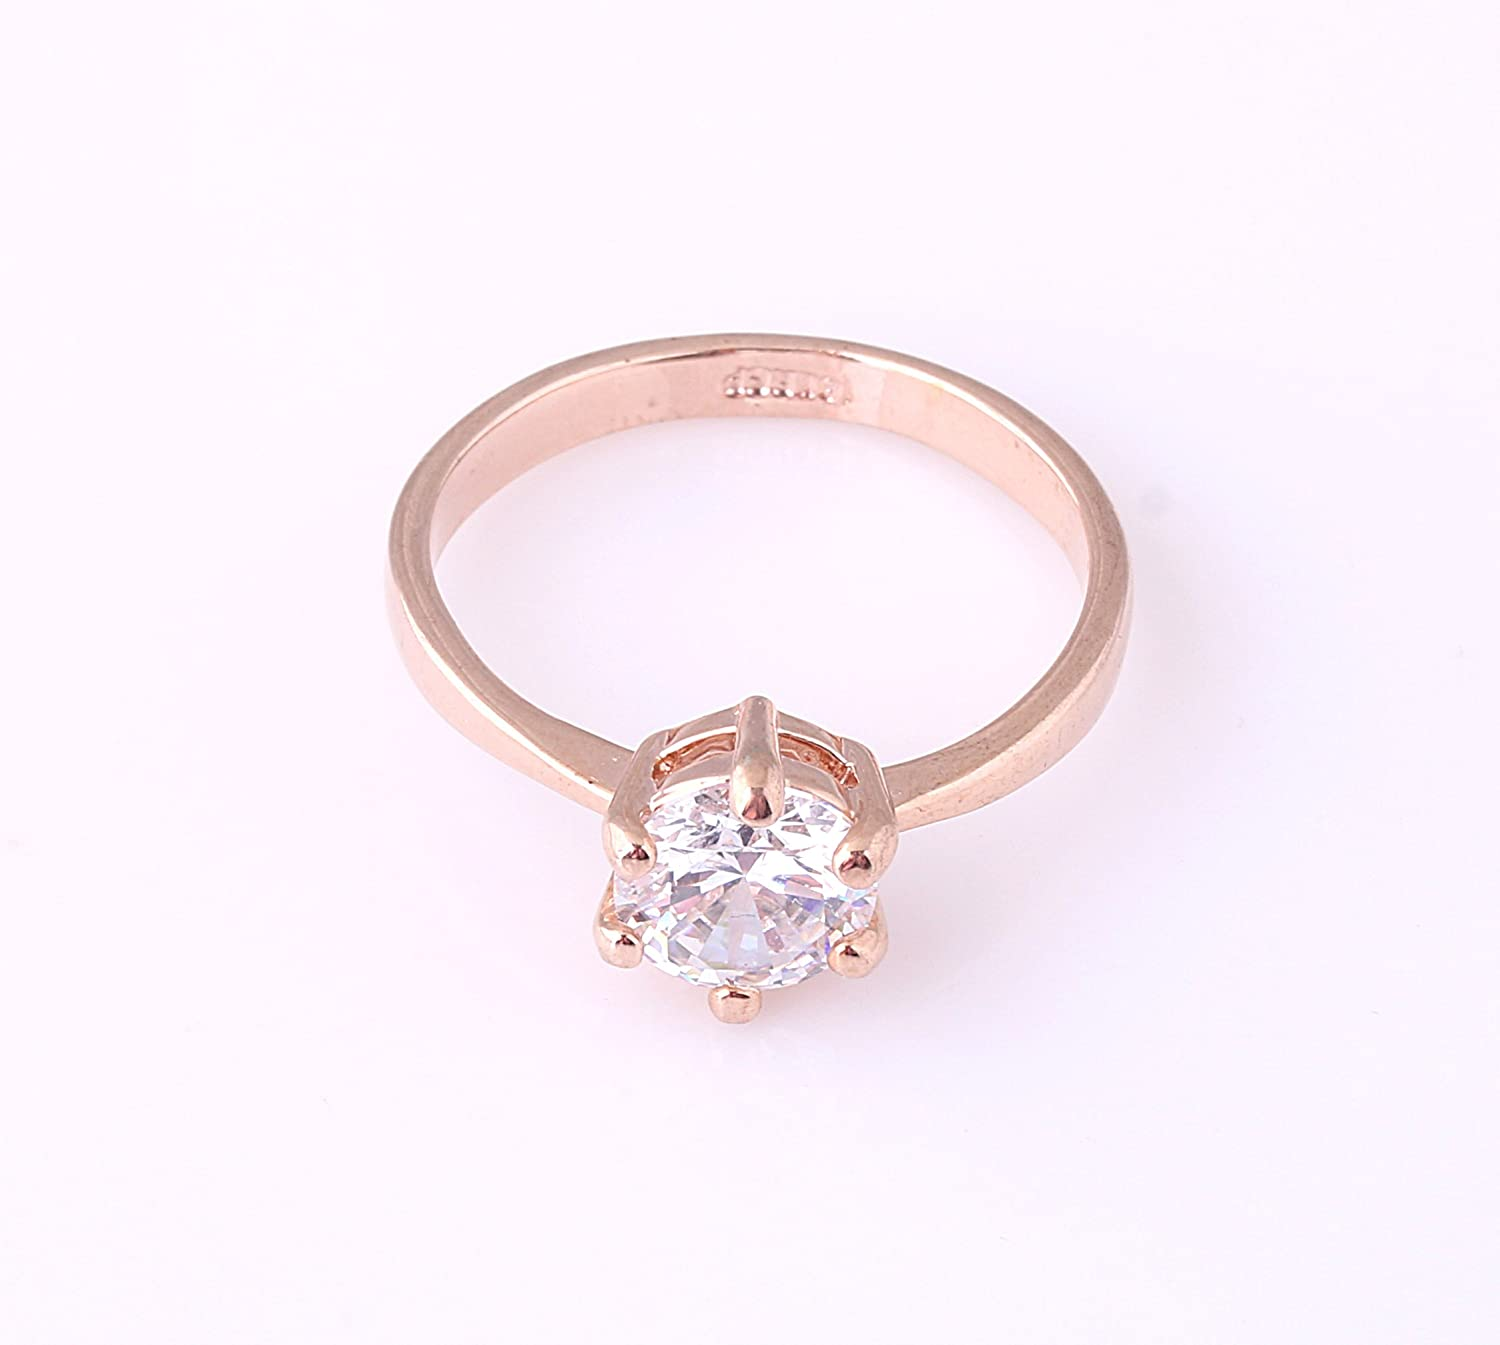 Acefeel 18K Gold Inlaid Zircon Six-claw Ring Promise Wedding Engagement Ring